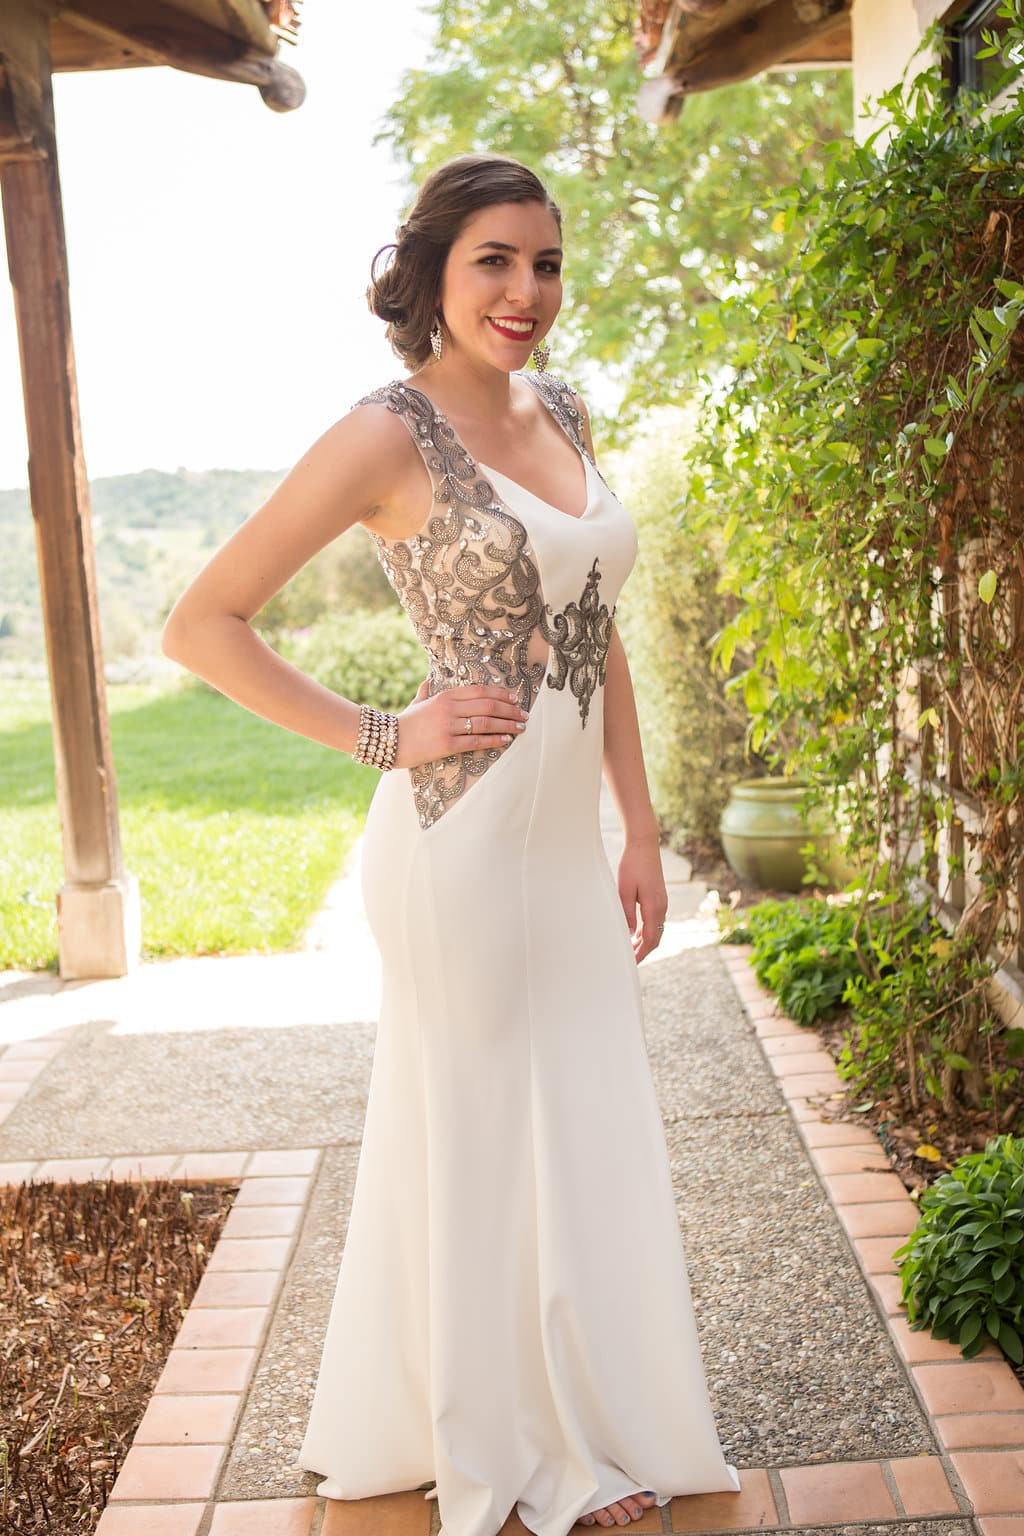 Whether it is prom, your quinceanera or a fun trip to Vegas, Valerie will put you at ease.